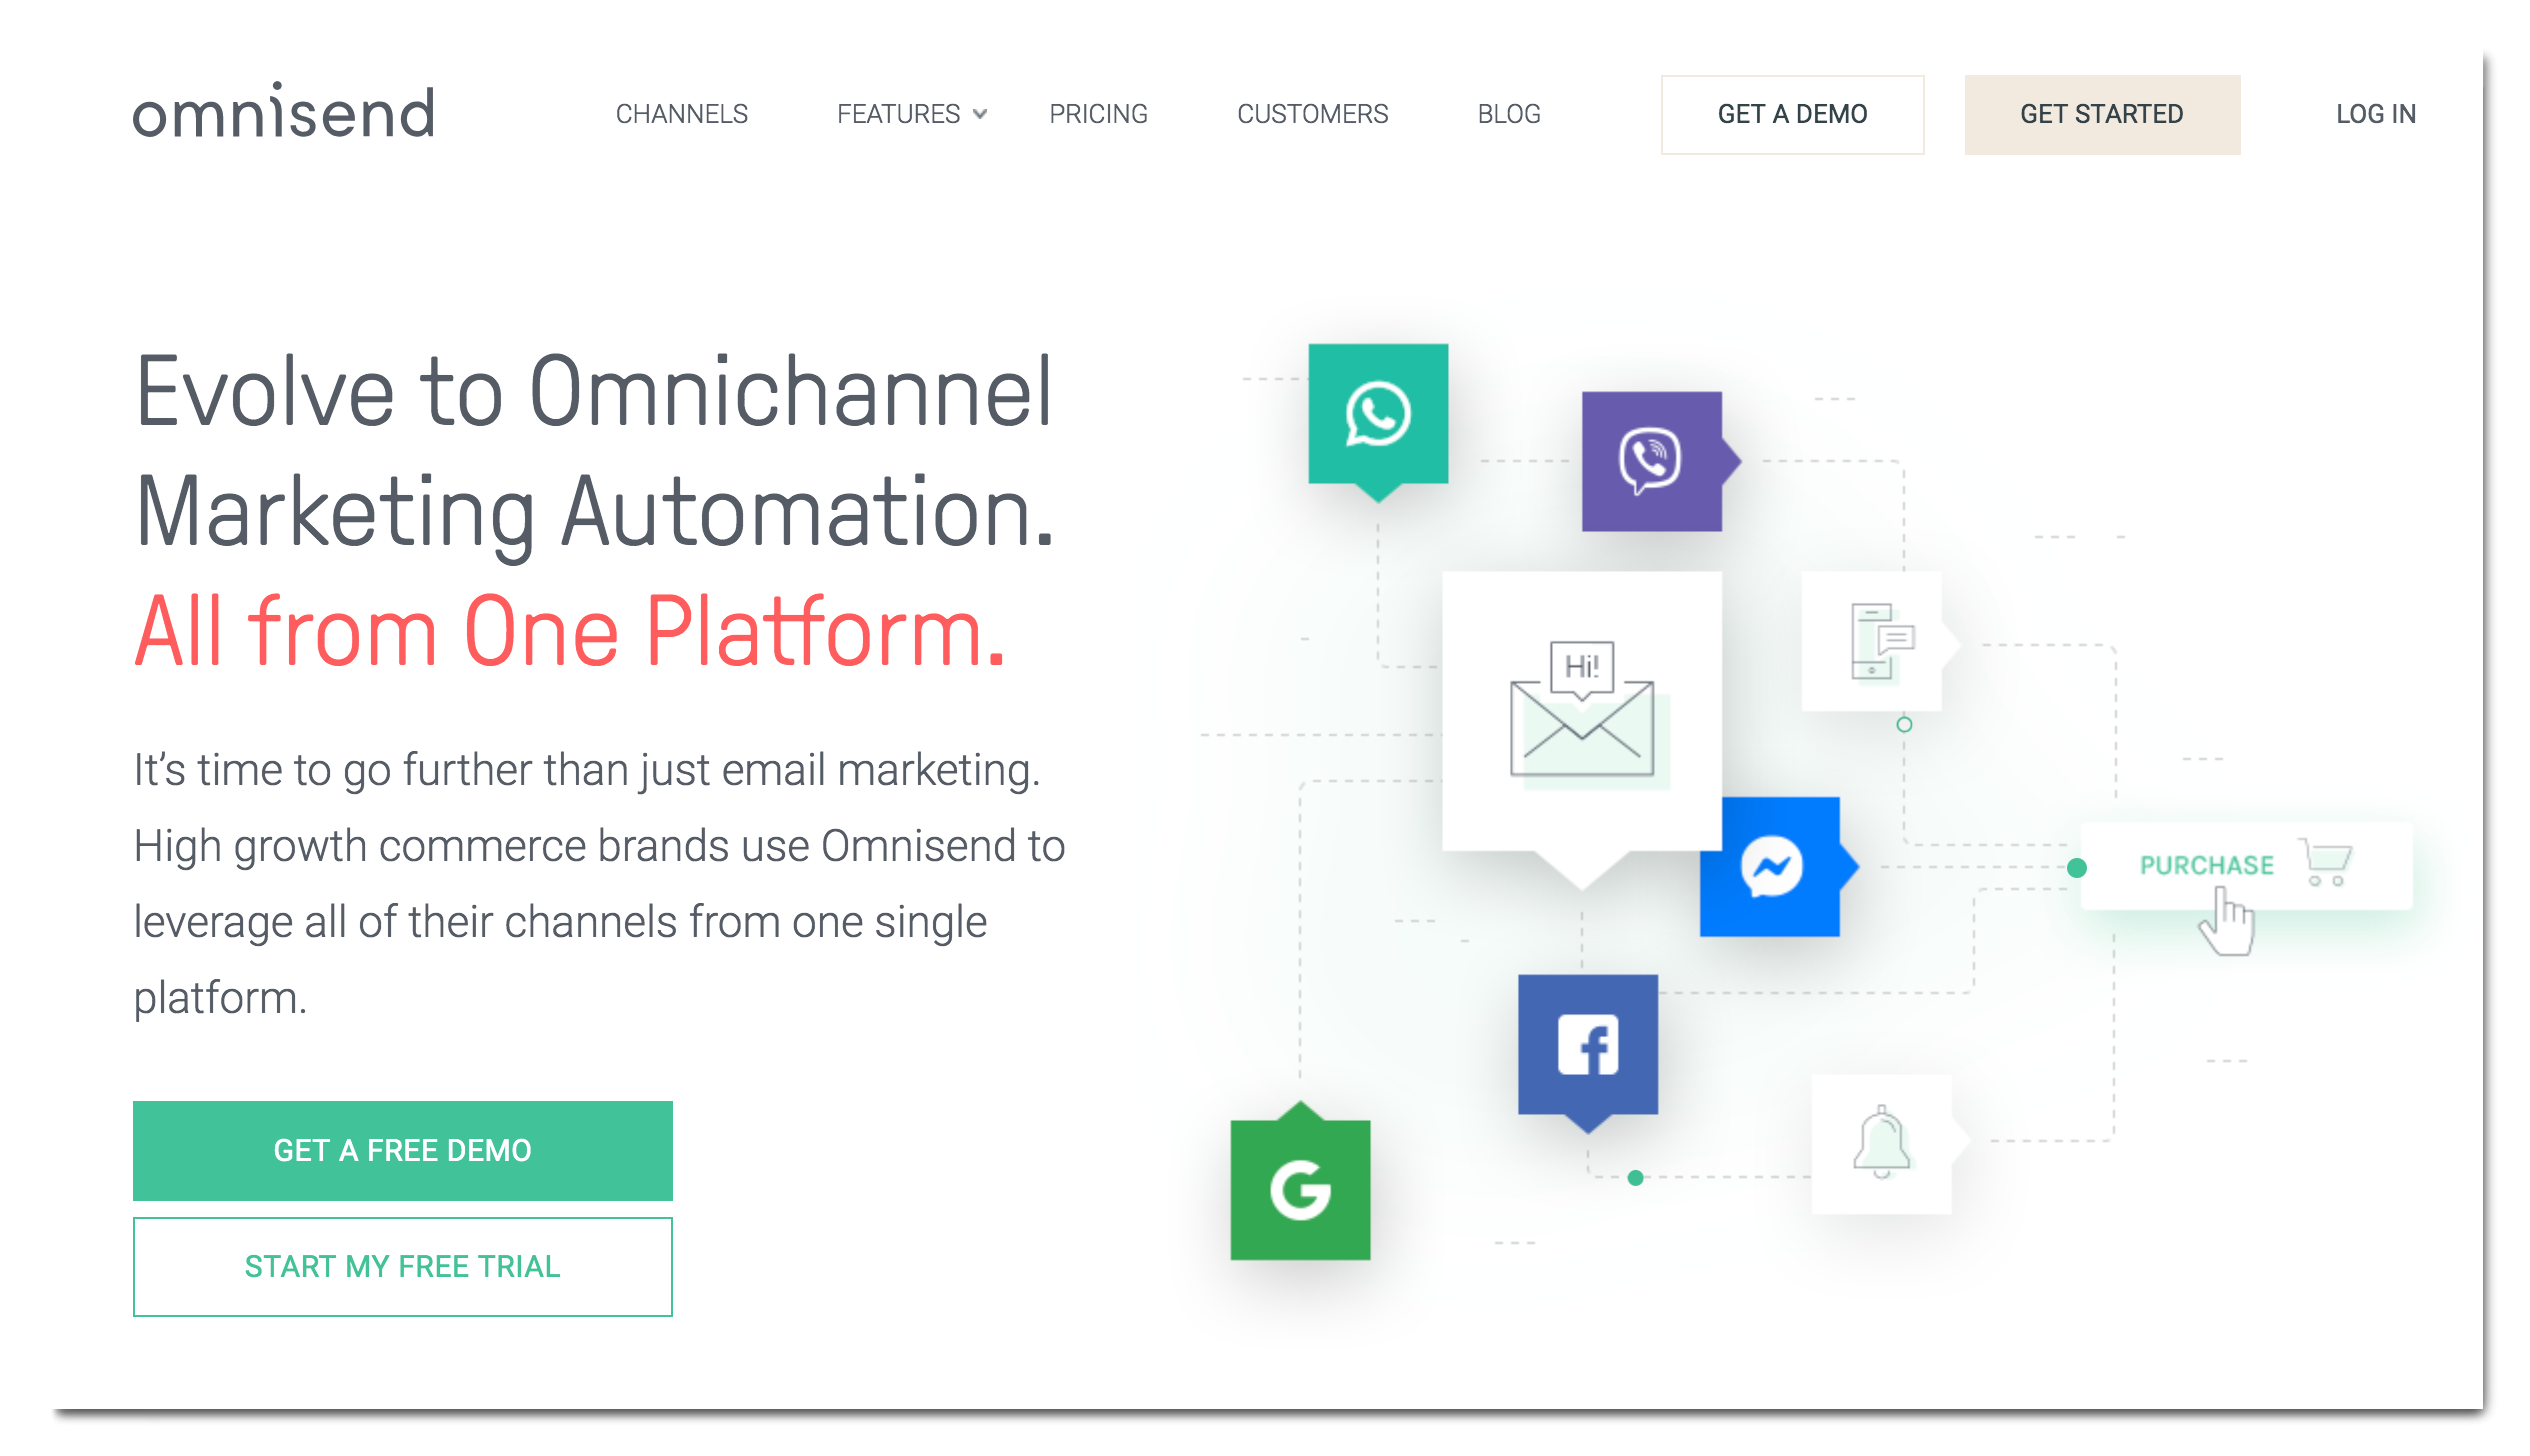 email-marketing-shopify-app-omnisend